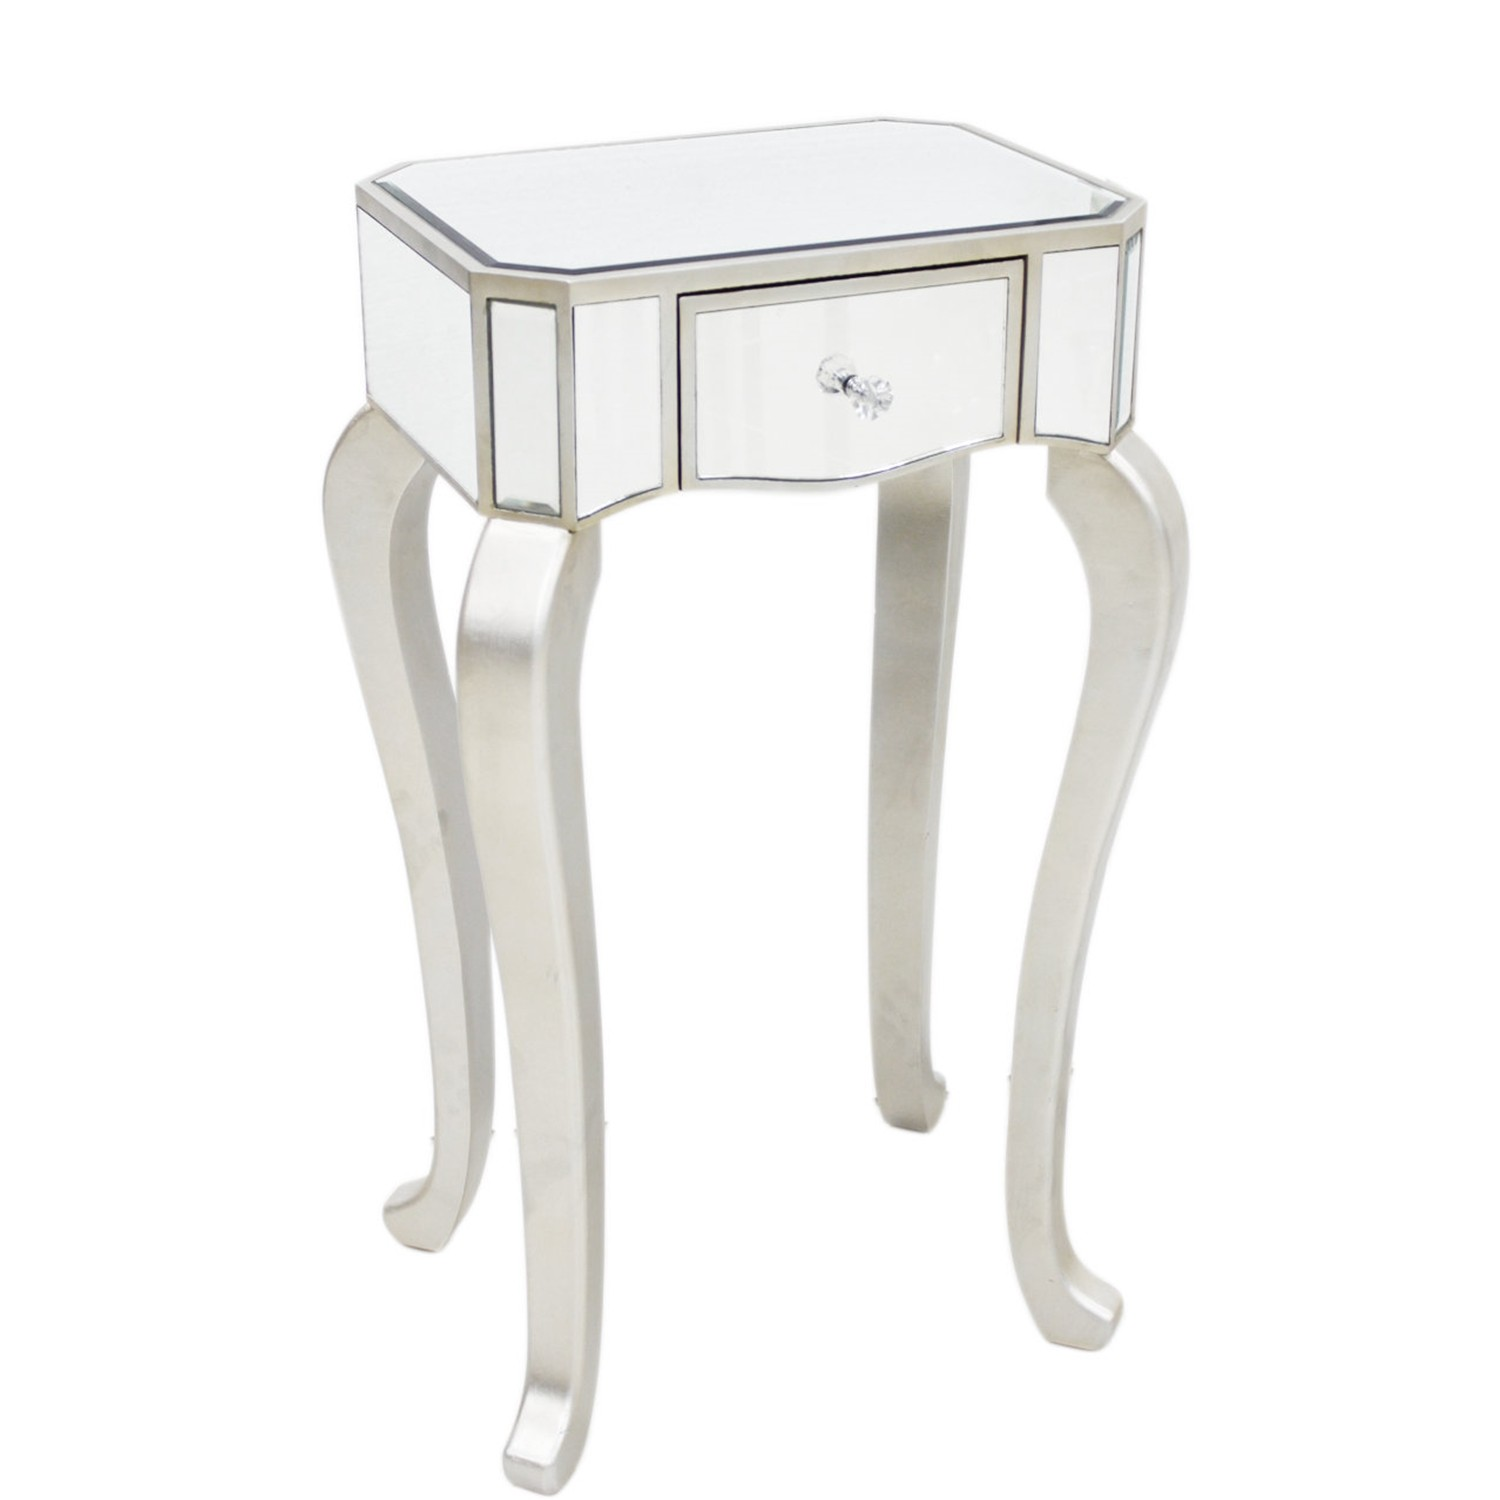 Single Drawer Mirrored Telephone Table, Champagne | Leekes